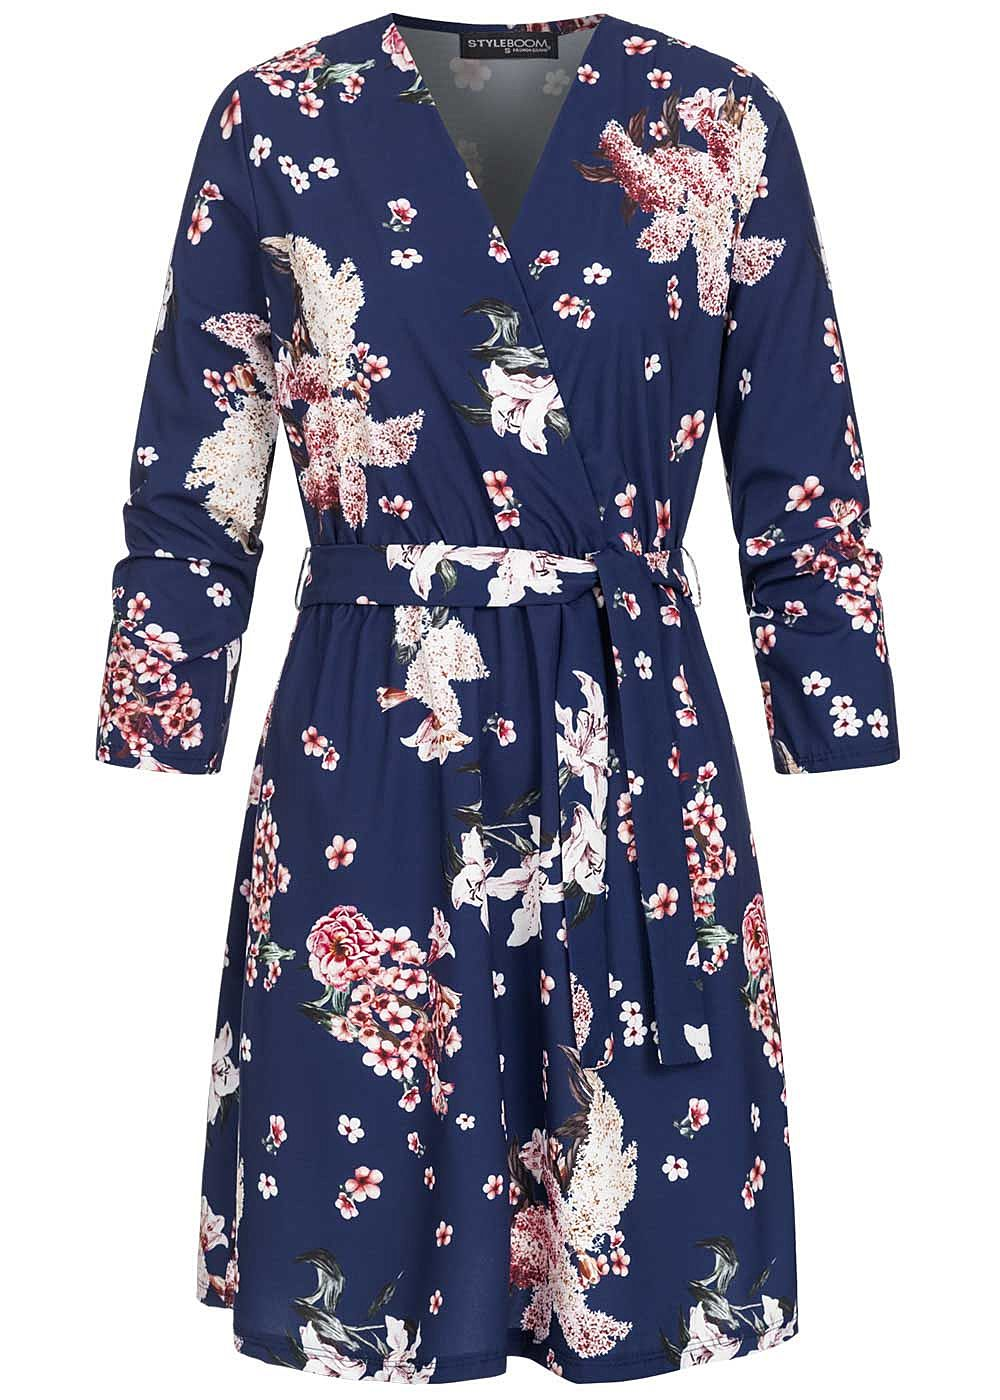 Styleboom Fashion Damen V-Neck Mini Kleid Blumen Print inkl. Bindegürtel navy blau - Art.-Nr.: 20026253-XXL-NY